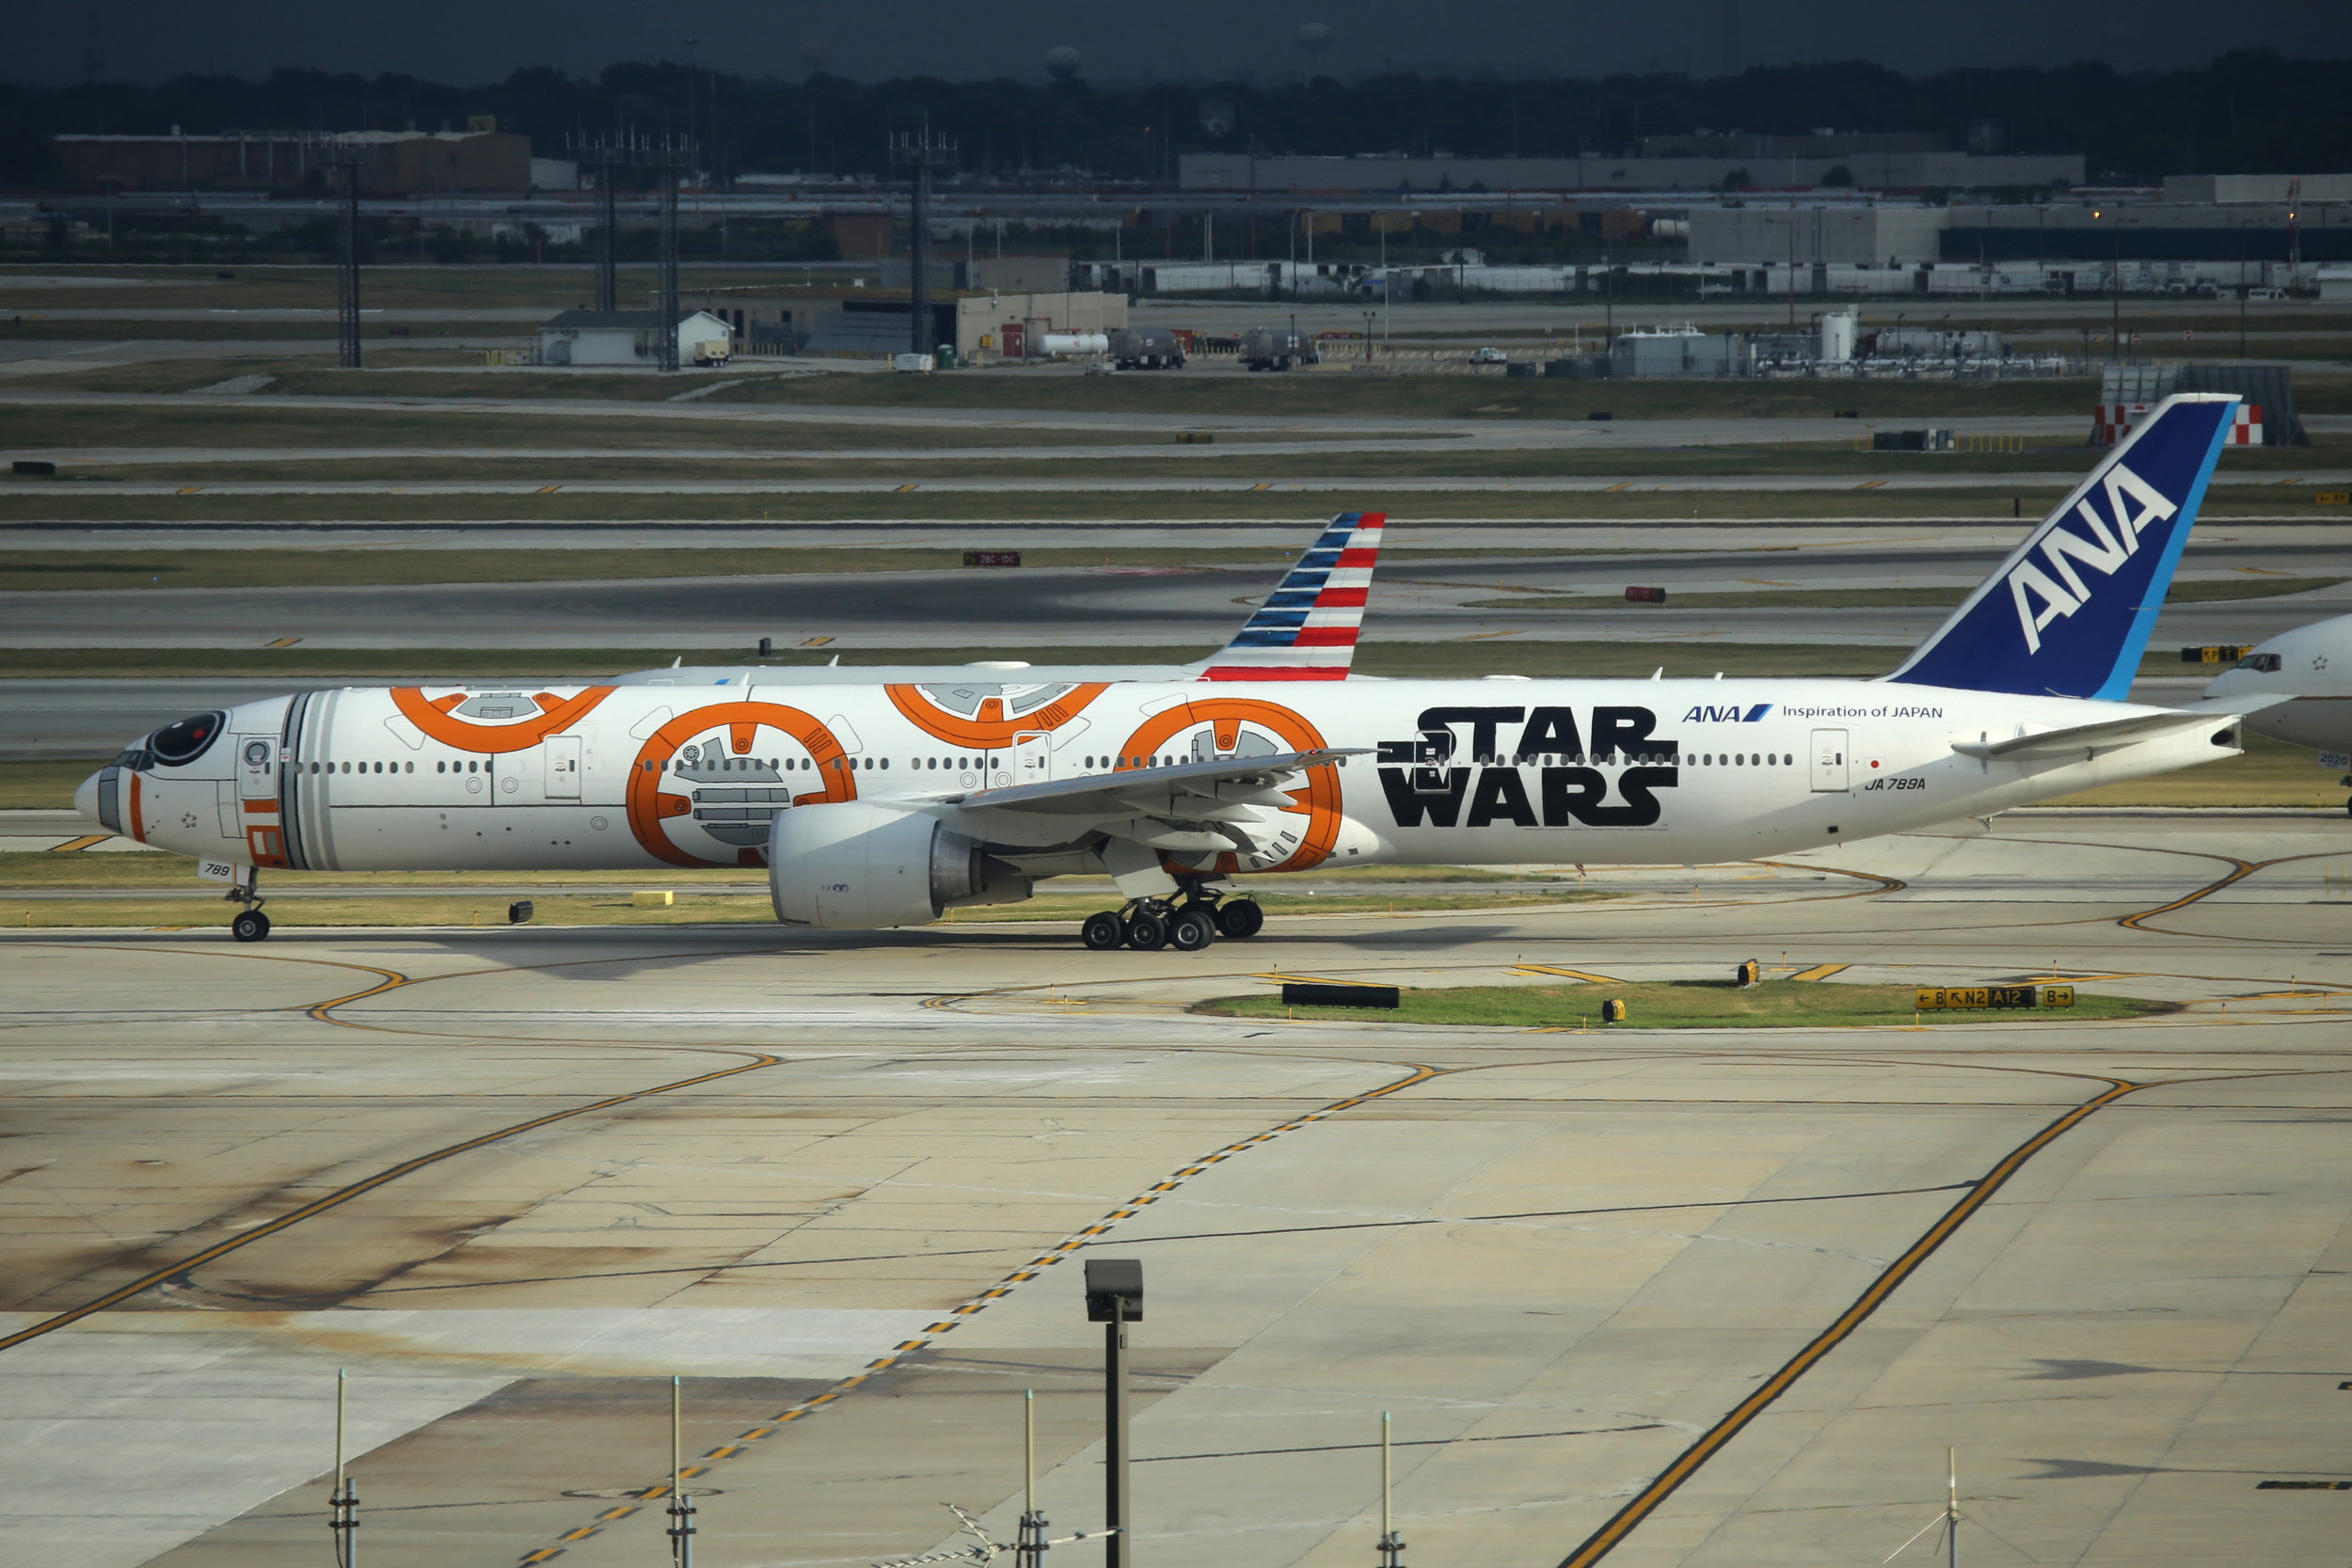 """JA789A ANA B777-3 """"Star Wars"""" taken from the Hilton Hotel at Chicago O'Hare Airport 21st July 2018 by John Wood"""